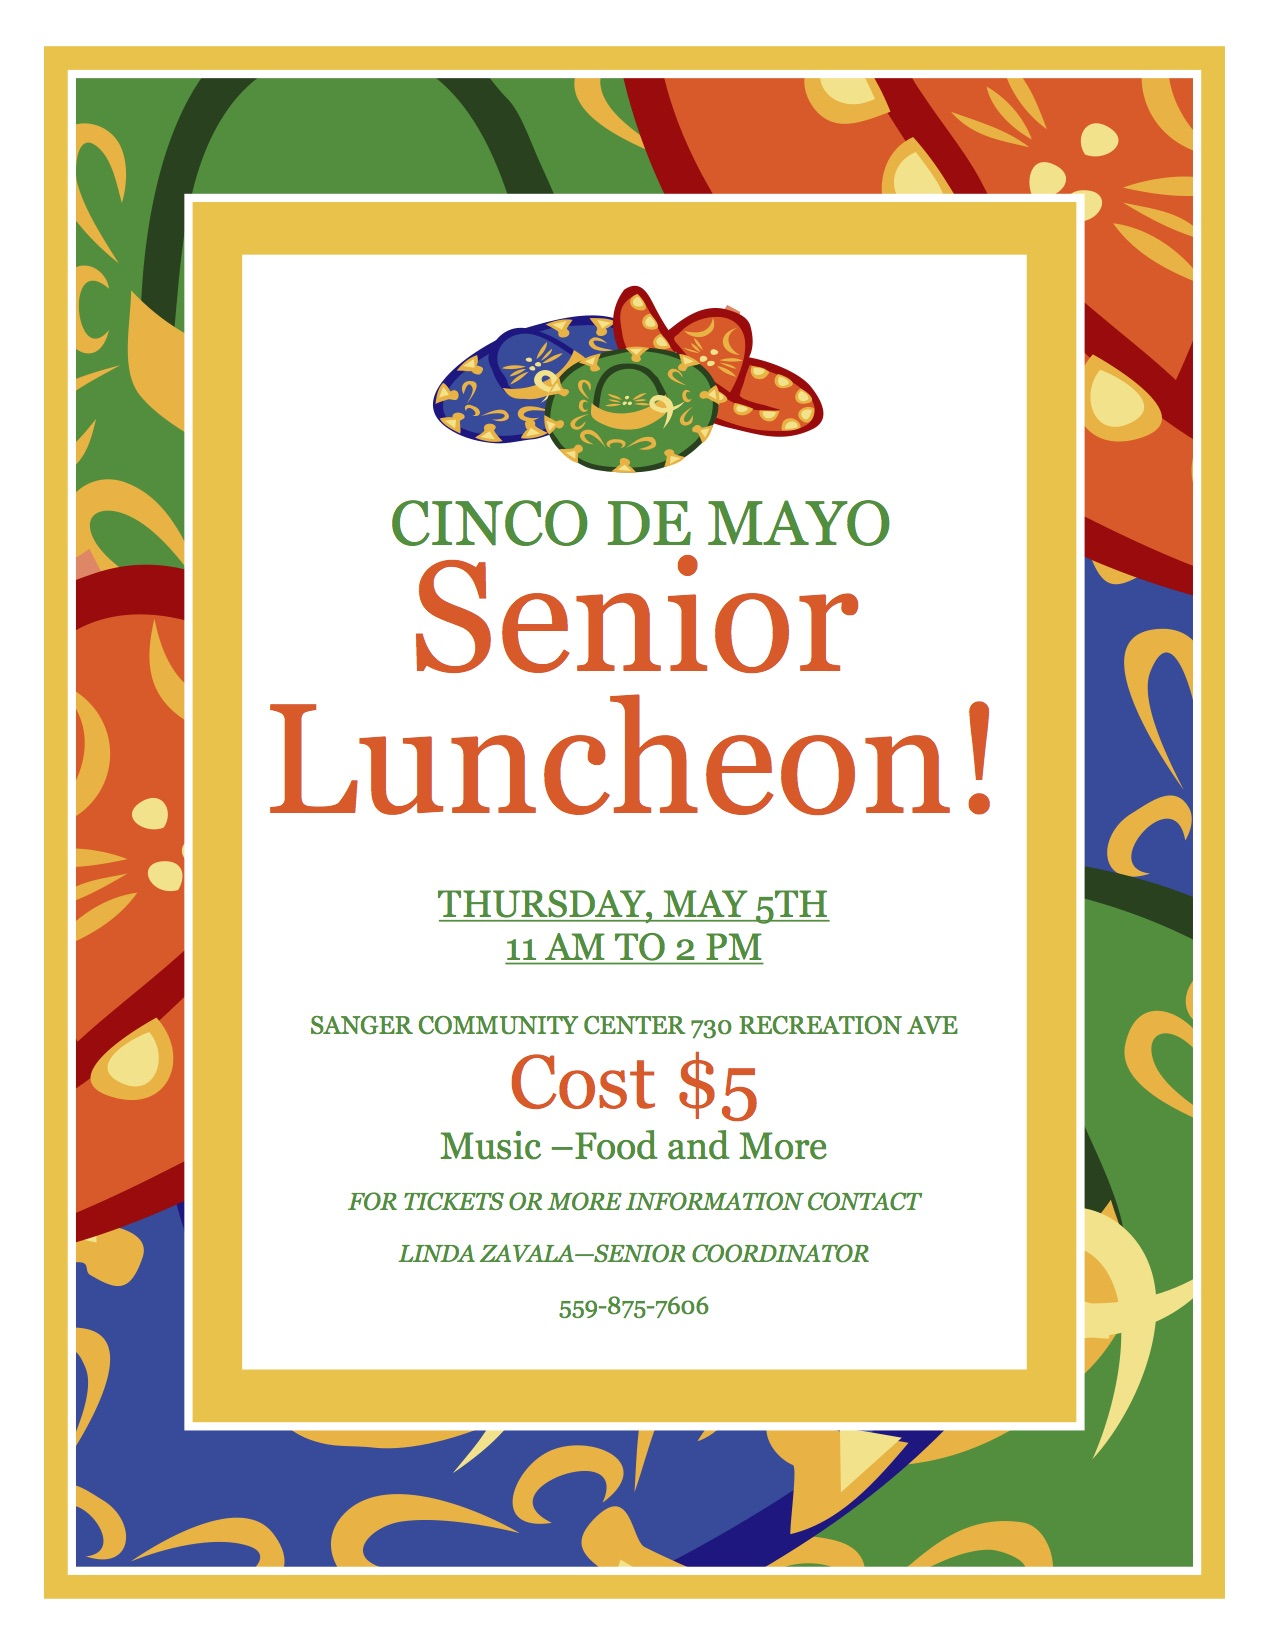 Cinco De Mayo Senior Luncheon - The Sanger Scene